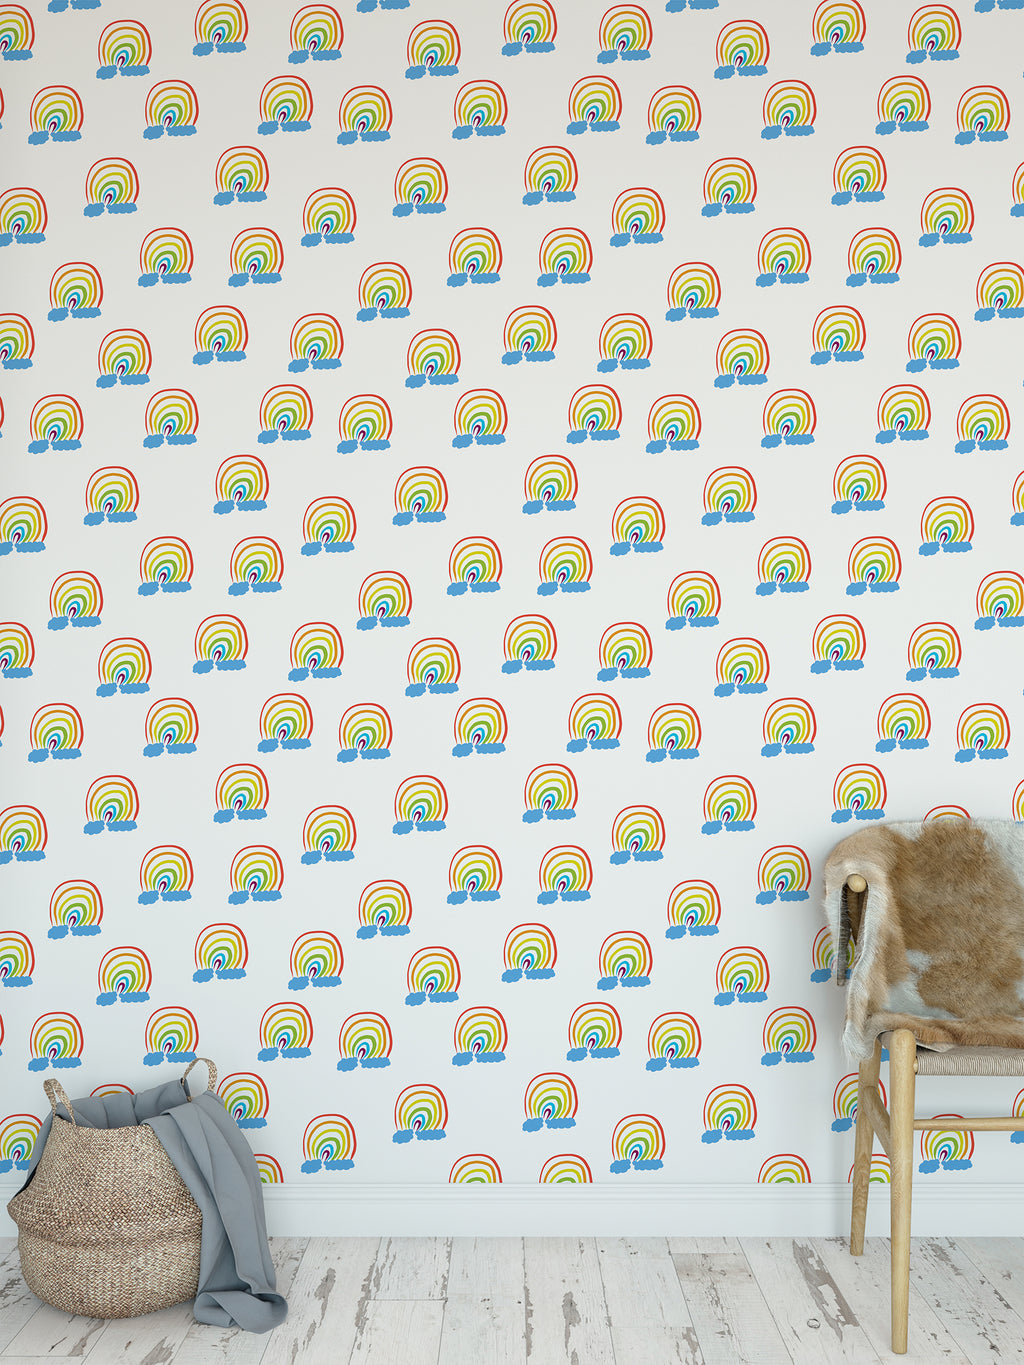 CREATIVITY IN THE CLOUDS Peel and Stick Wallpaper By Jackie Reynolds